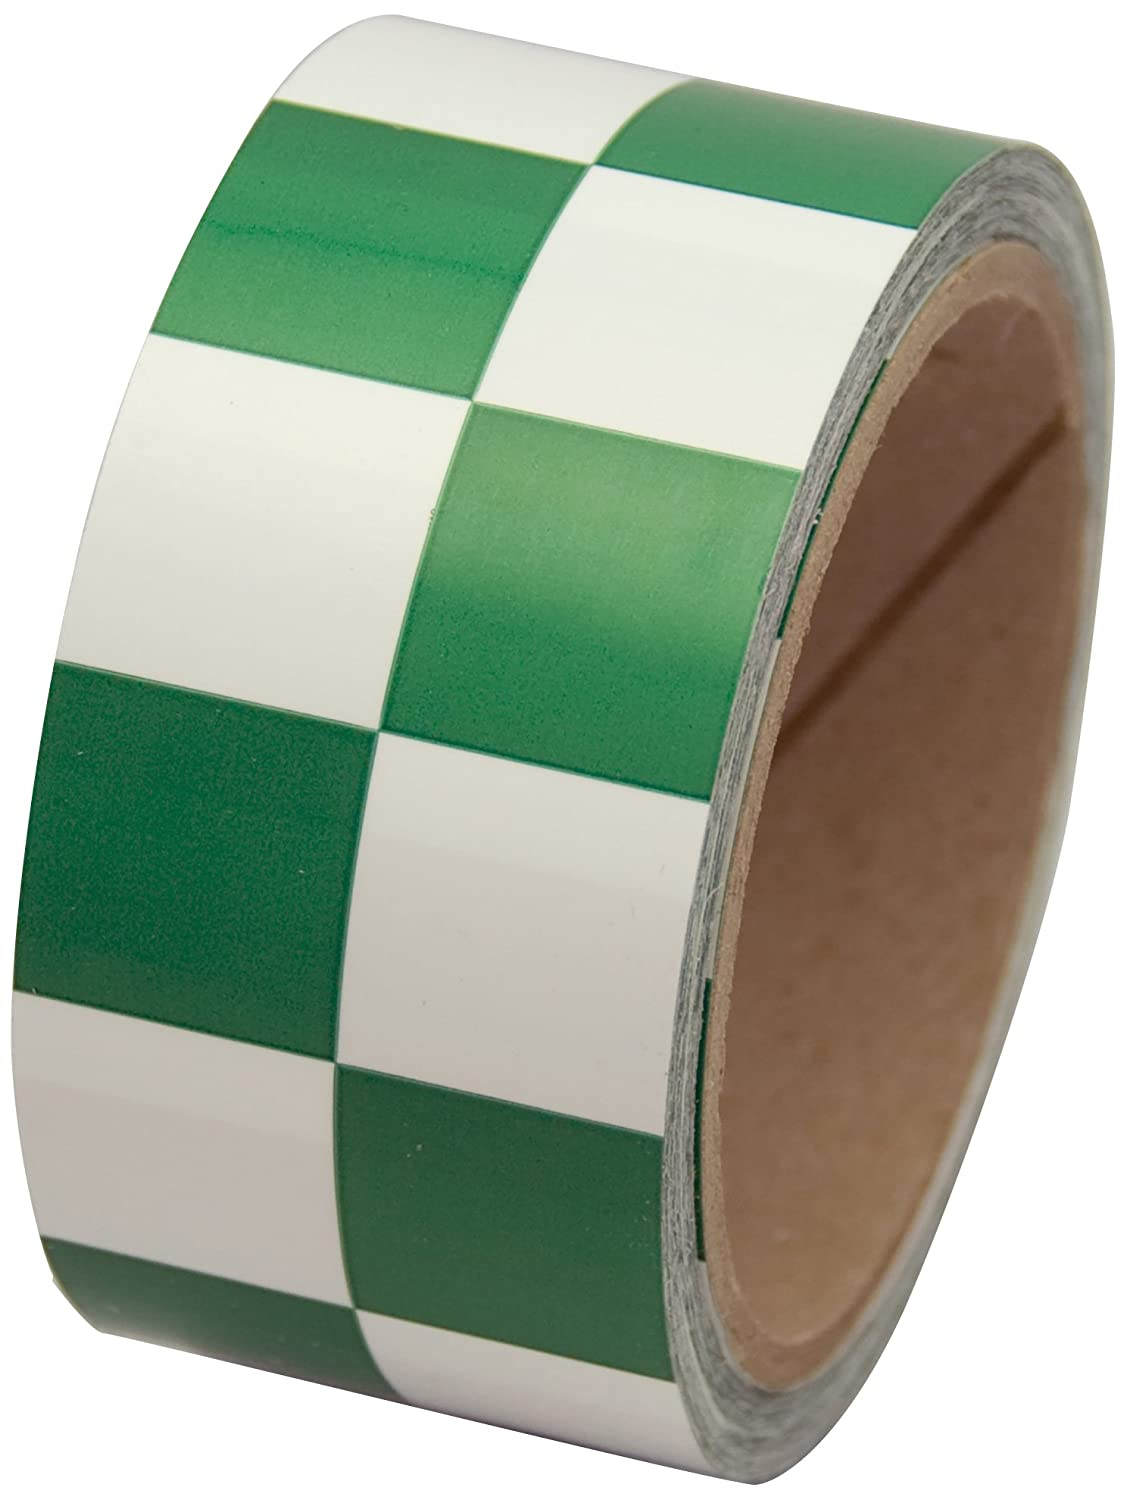 INCOM Manufacturing: LCB223 1 inch Square Pattern PVC Checkerboard Racing Laminated Tape, 2 inch x 54 ft, Green and White – Indoor and Outdoor